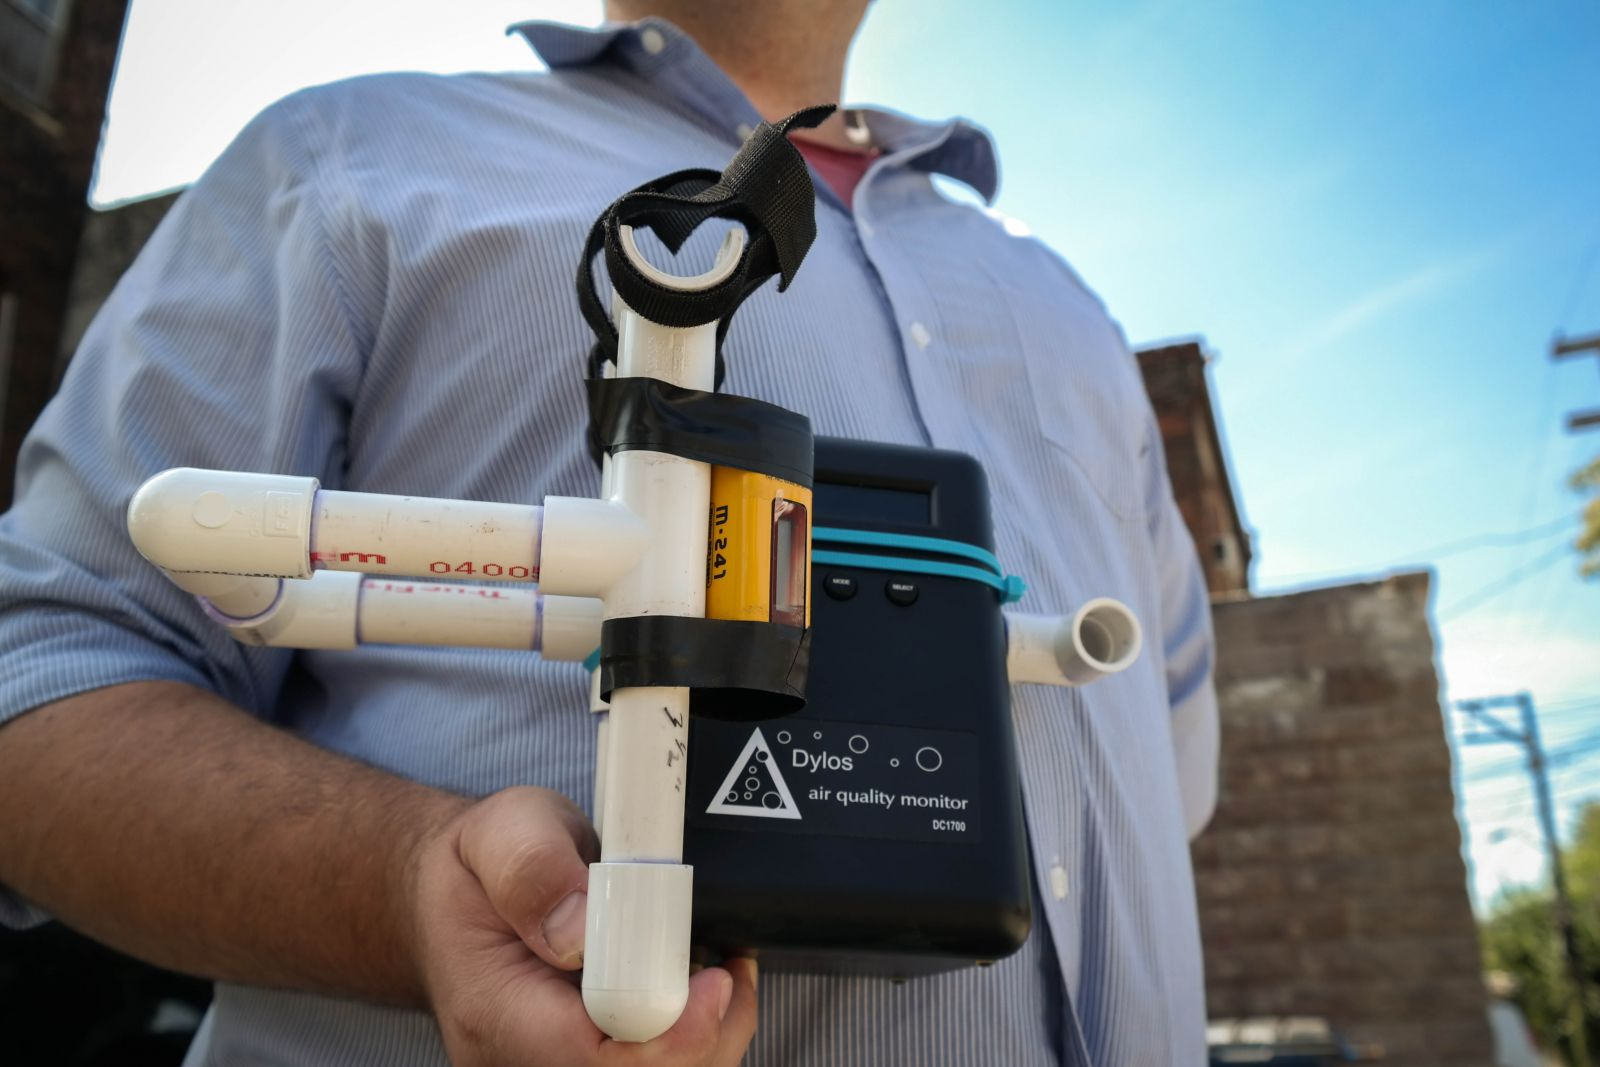 GASP's air quality monitor is a mix of high and low tech: PVC pipes, velcro and rubber cement make up a DIY bracket that holds on a sensor that measures air quality using lasers. Photo: Lou Blouin